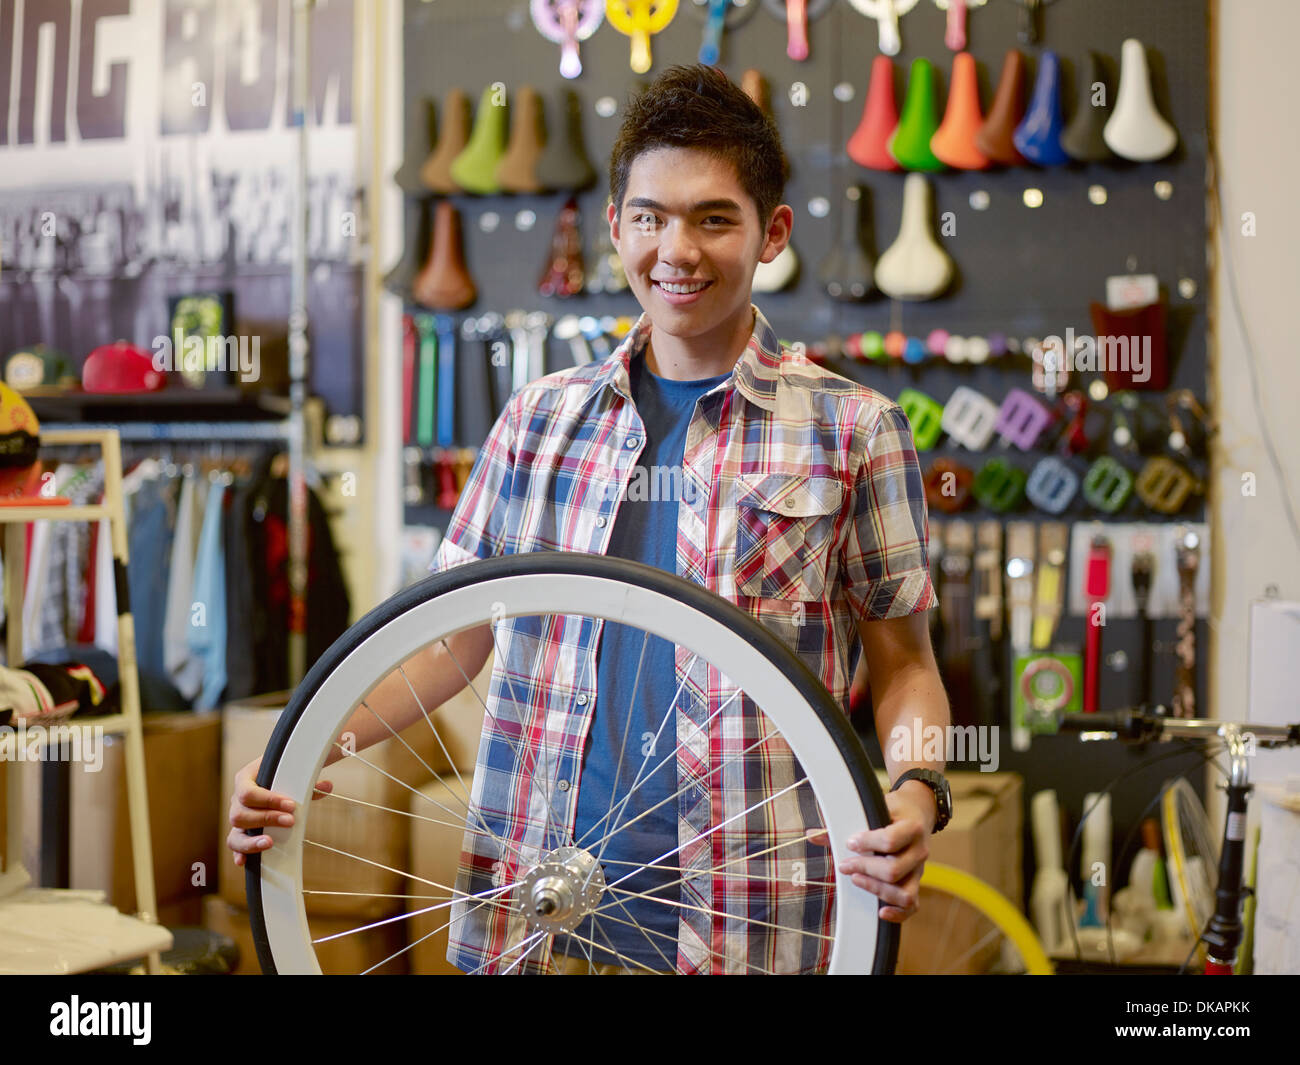 Portrait of young man in bike shop holding bicycle wheel - Stock Image